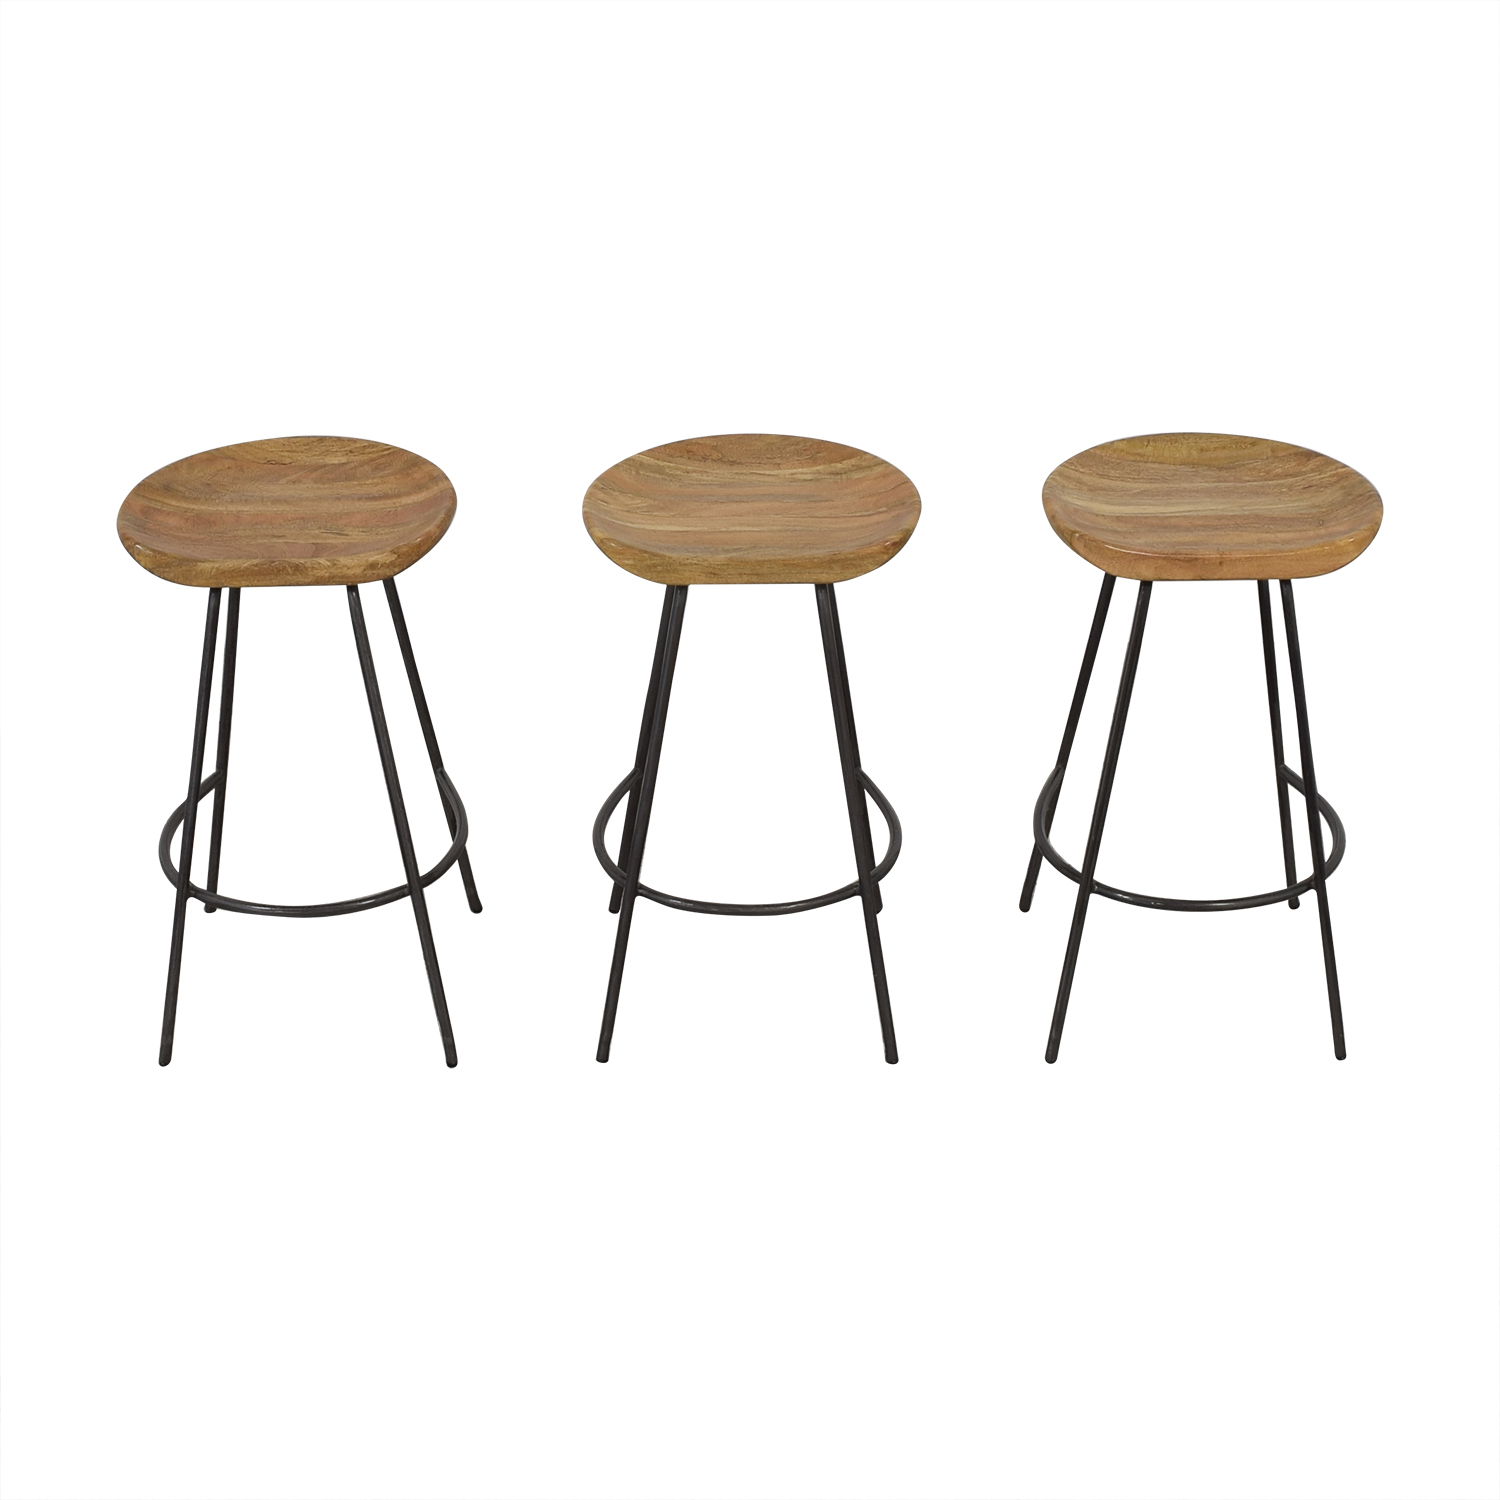 West Elm West Elm Alden Bar and Counter Stools brown and grey